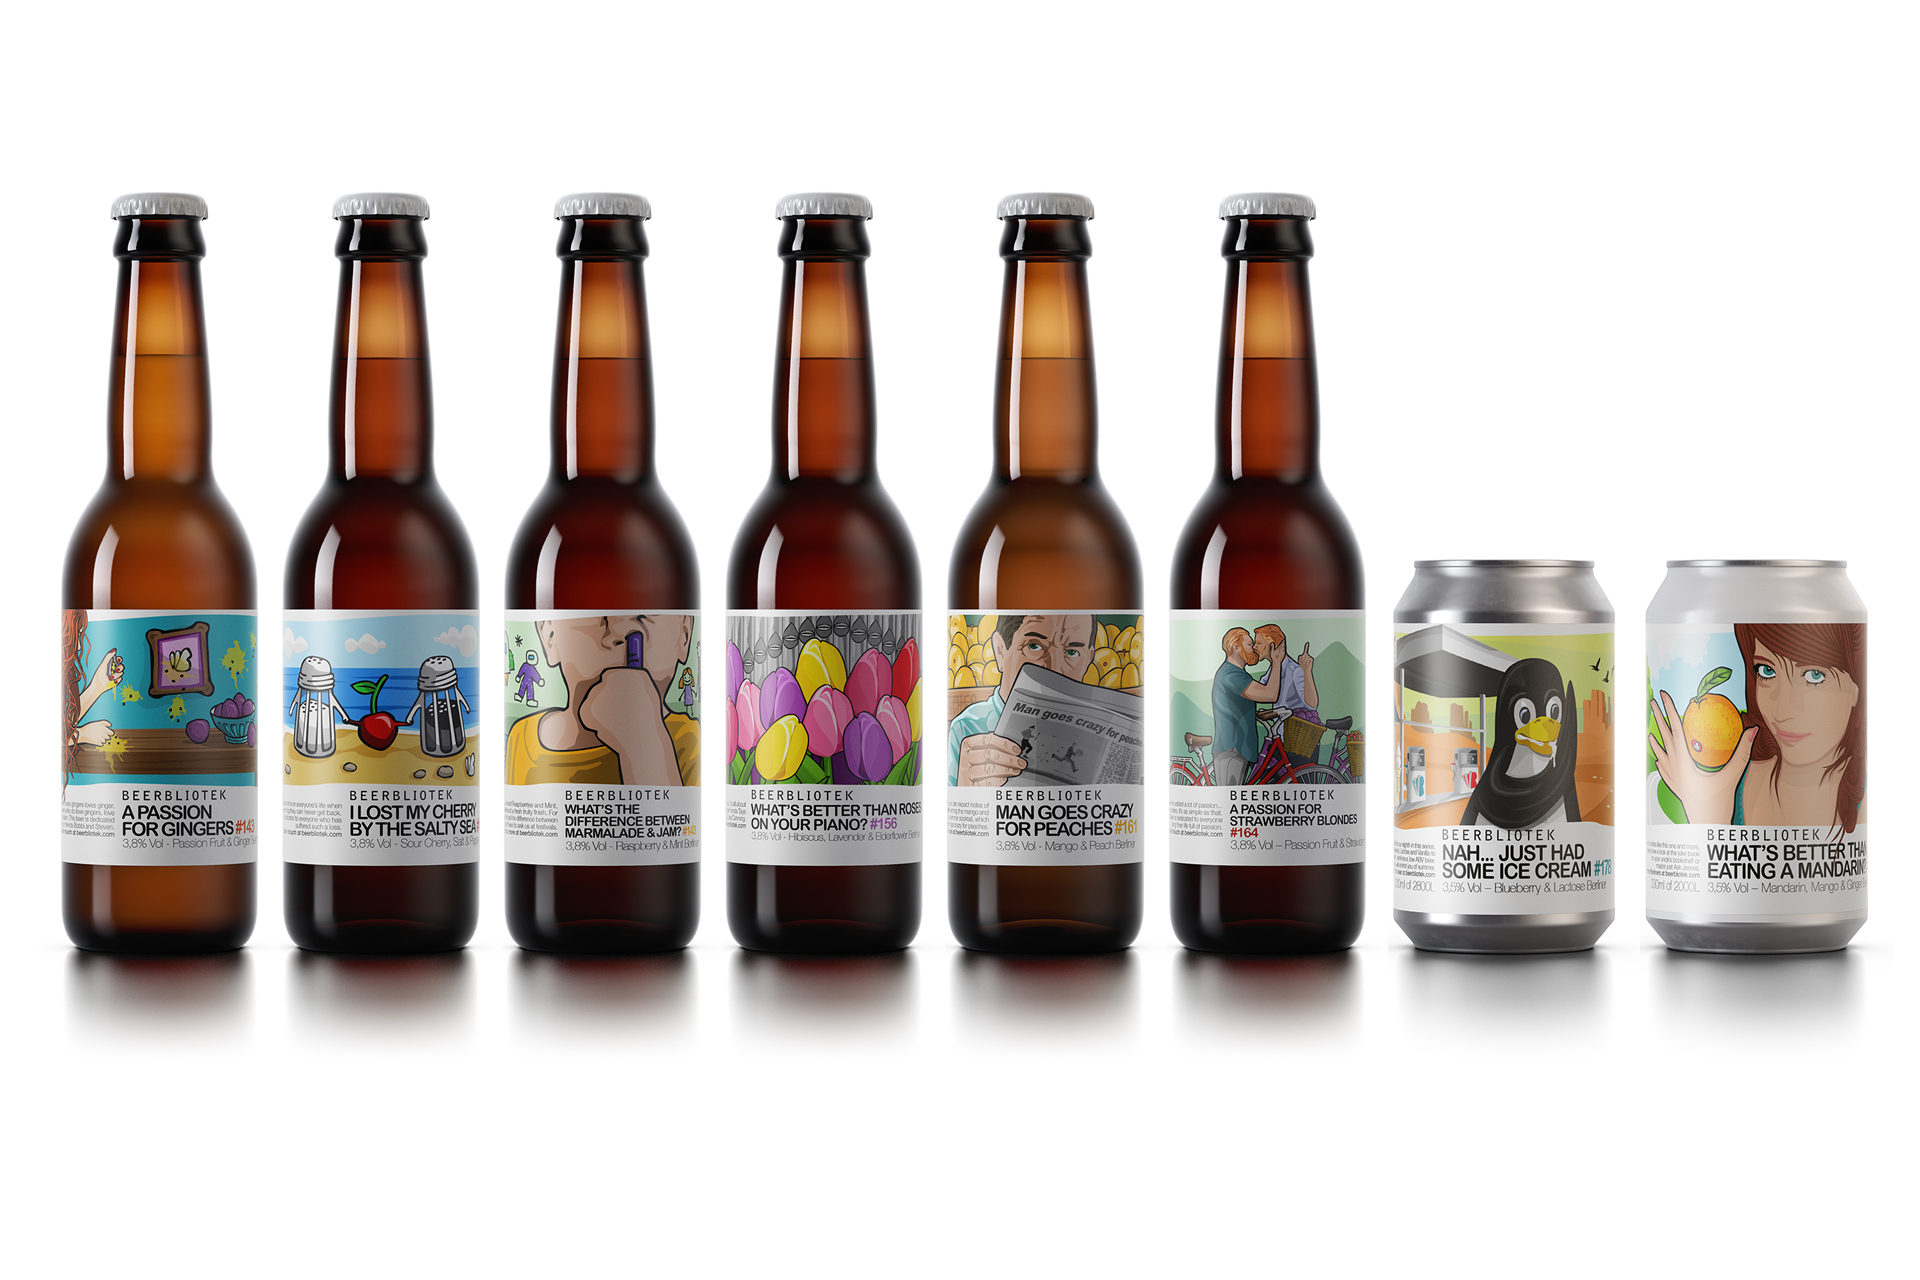 The Beerbliotek Berliner Weisse Range with illustrations. Bottles and cans.